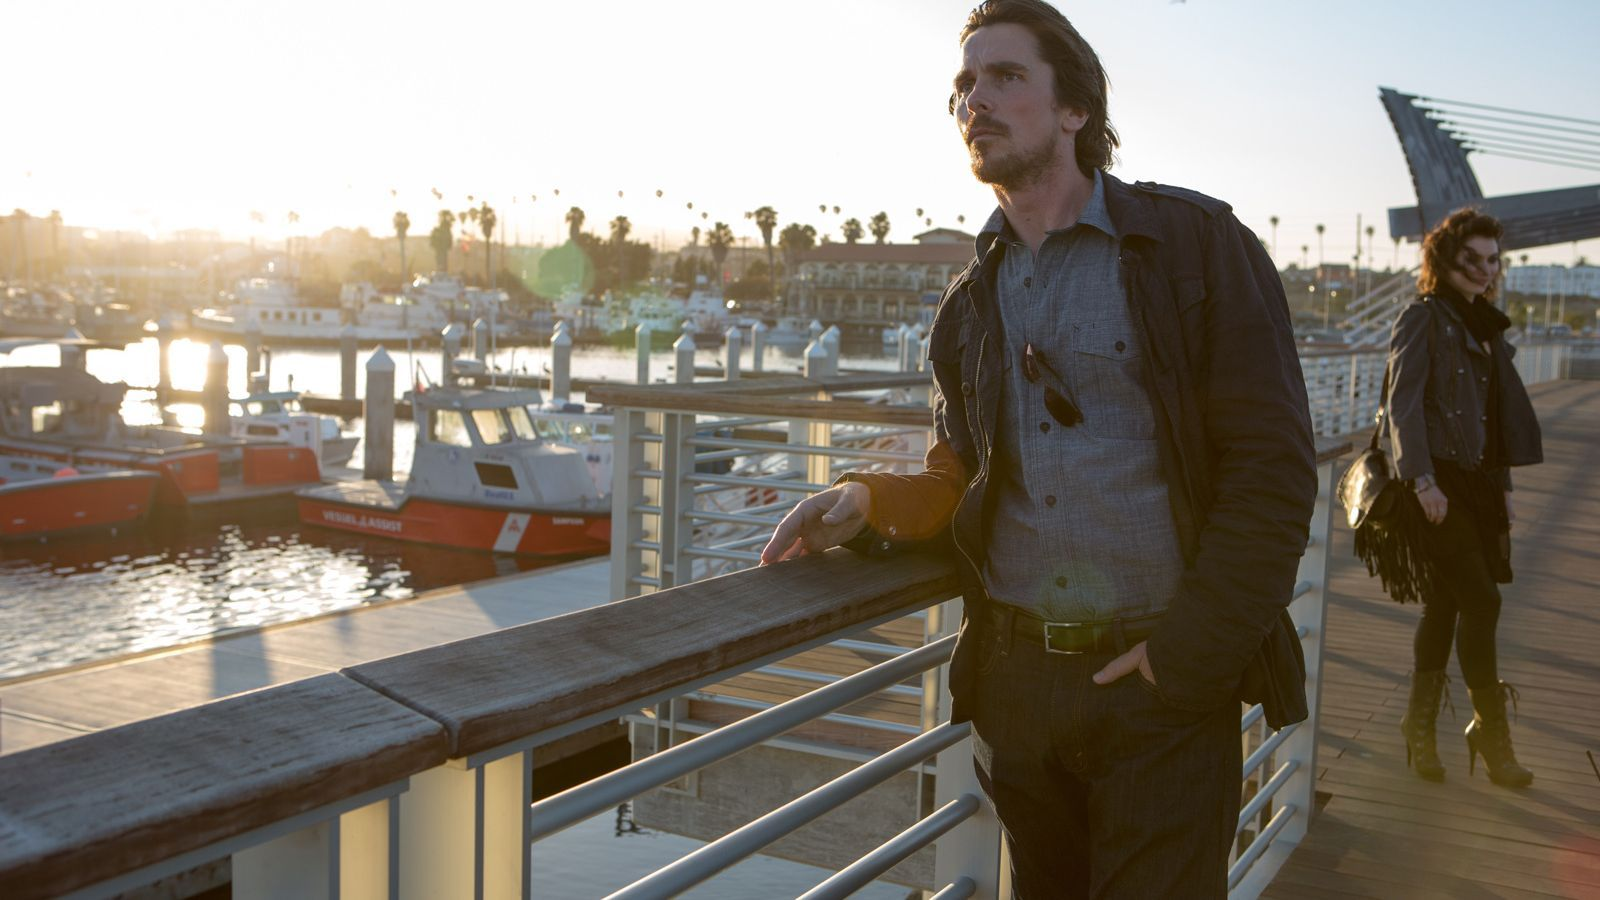 Christian Bale a 'Knight of cups'